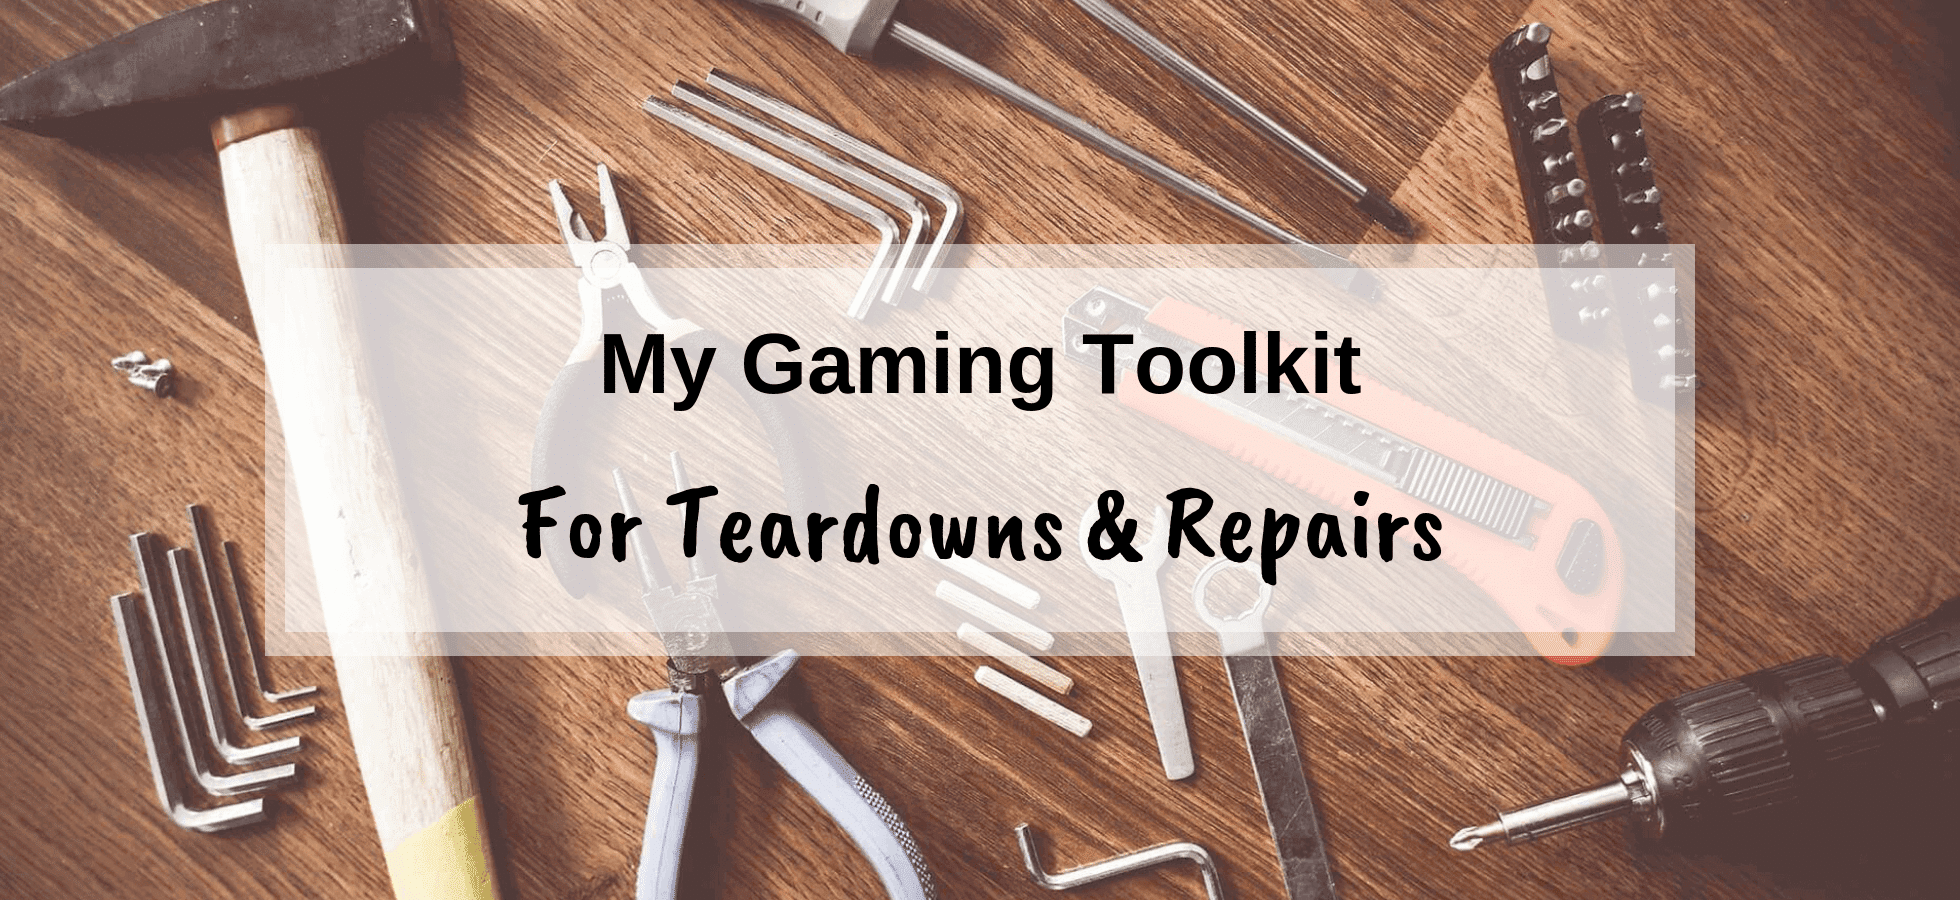 My ultimate gaming toolkit for tear downs and repairs